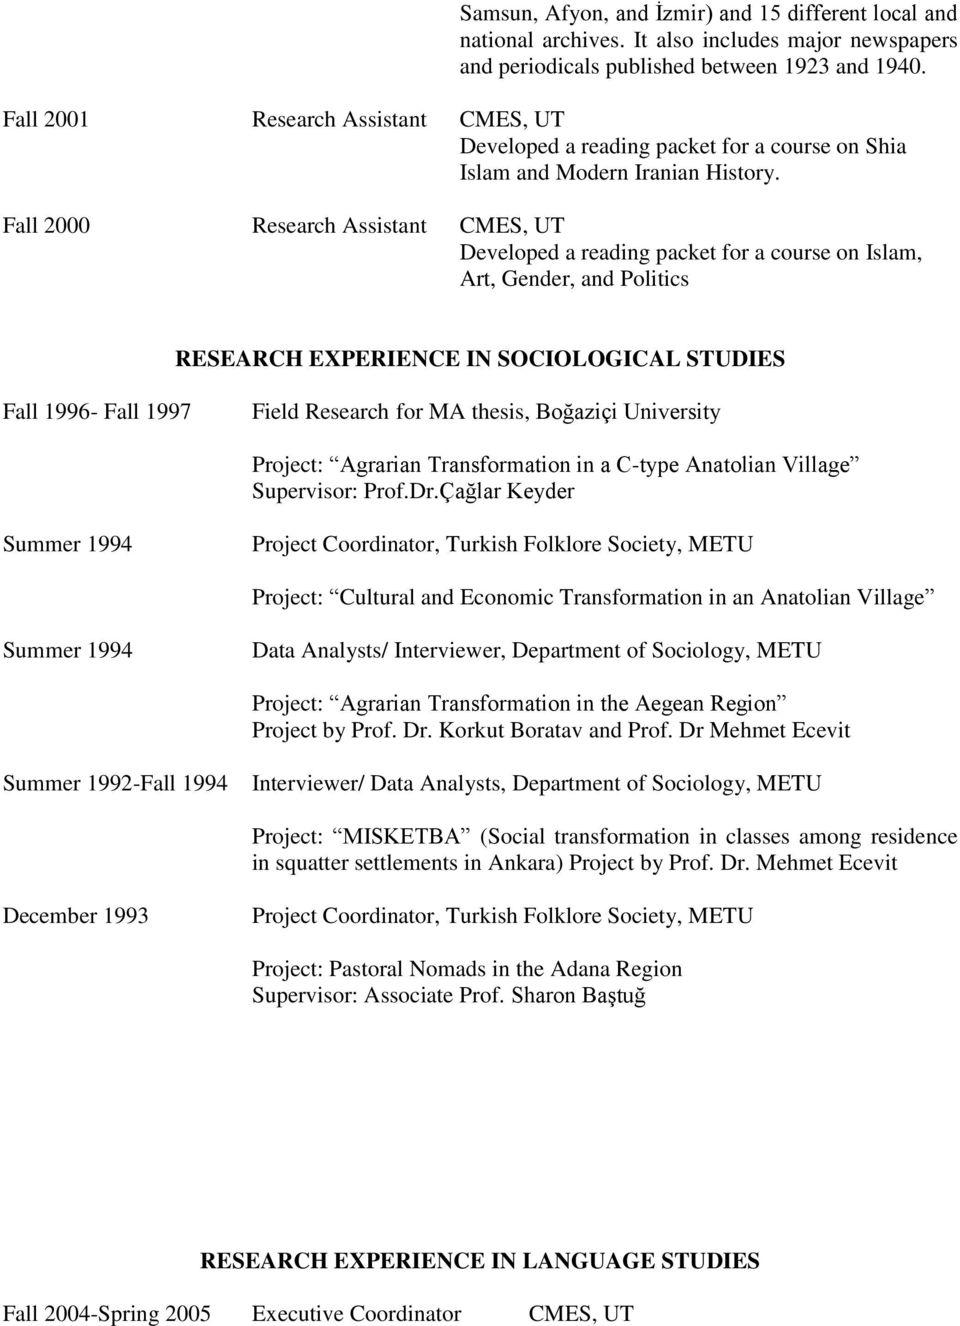 Fall 2000 Research Assistant CMES, UT Developed a reading packet for a course on Islam, Art, Gender, and Politics RESEARCH EXPERIENCE IN SOCIOLOGICAL STUDIES Fall 1996- Fall 1997 Field Research for